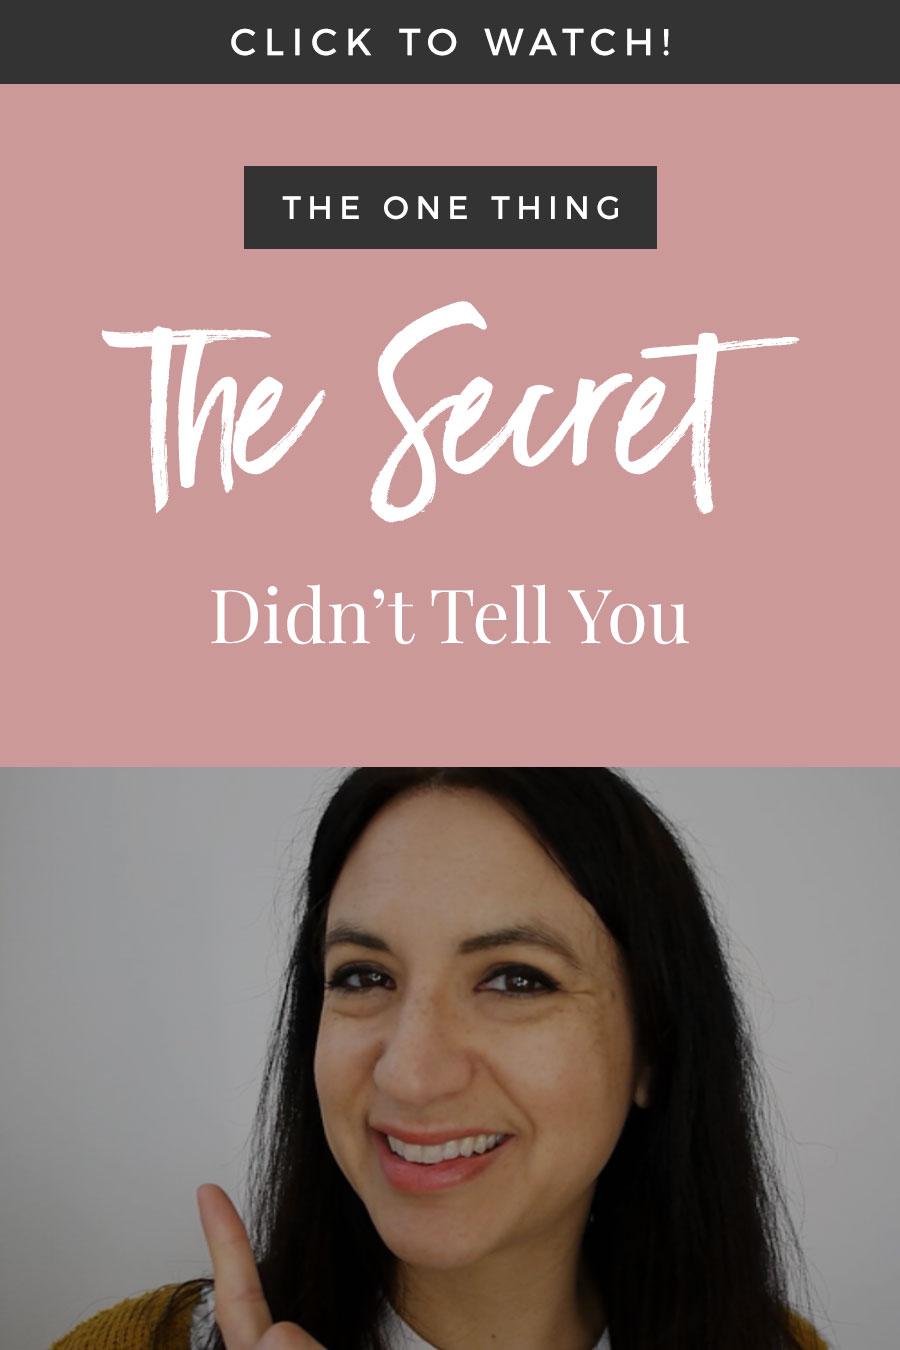 The One Thing The Secret Didn't Tell You